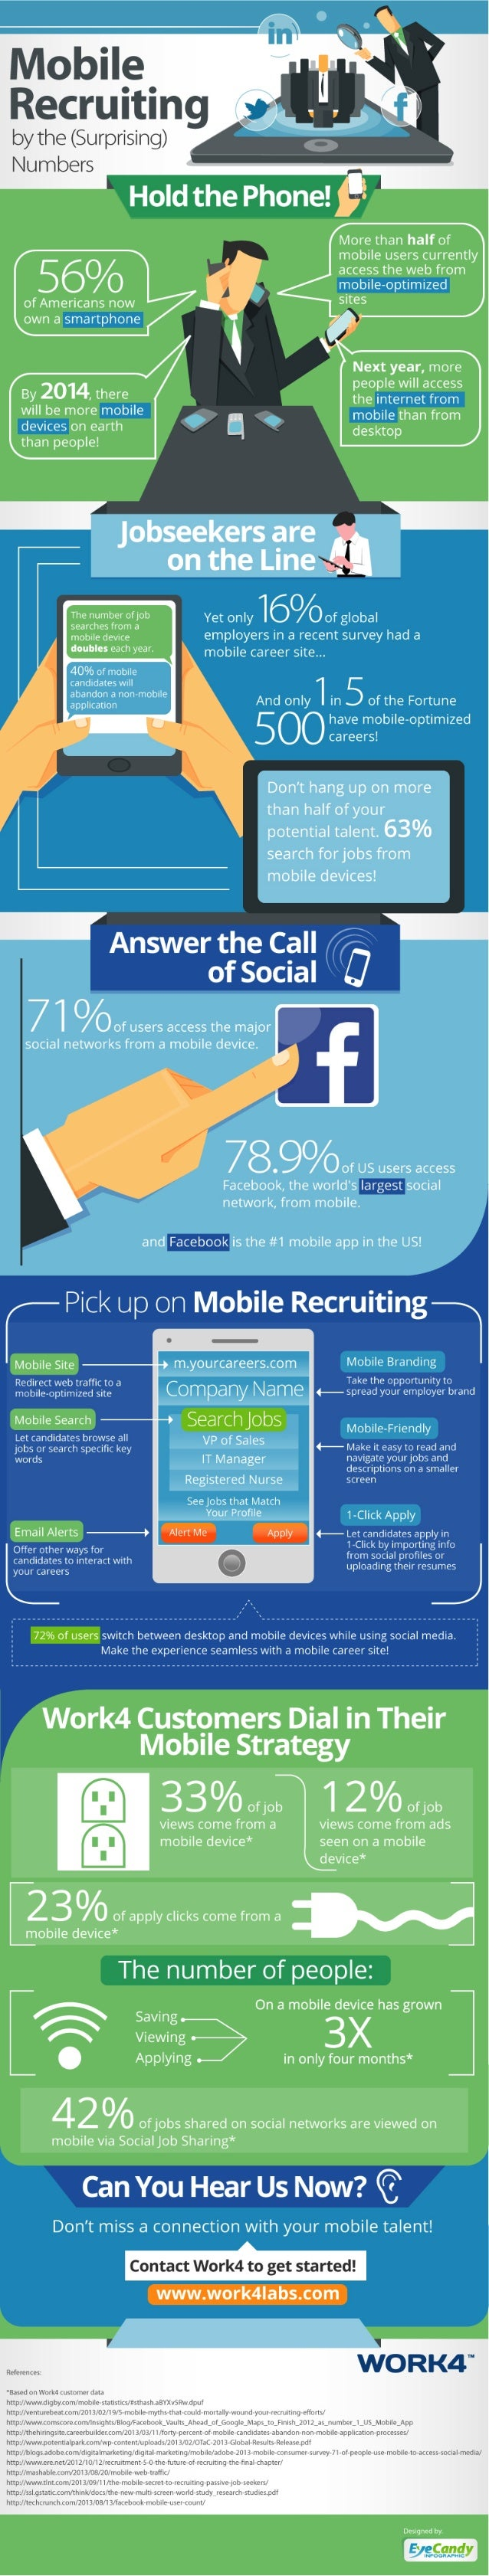 Mobile Recruiting by the (Surprising) Numbers